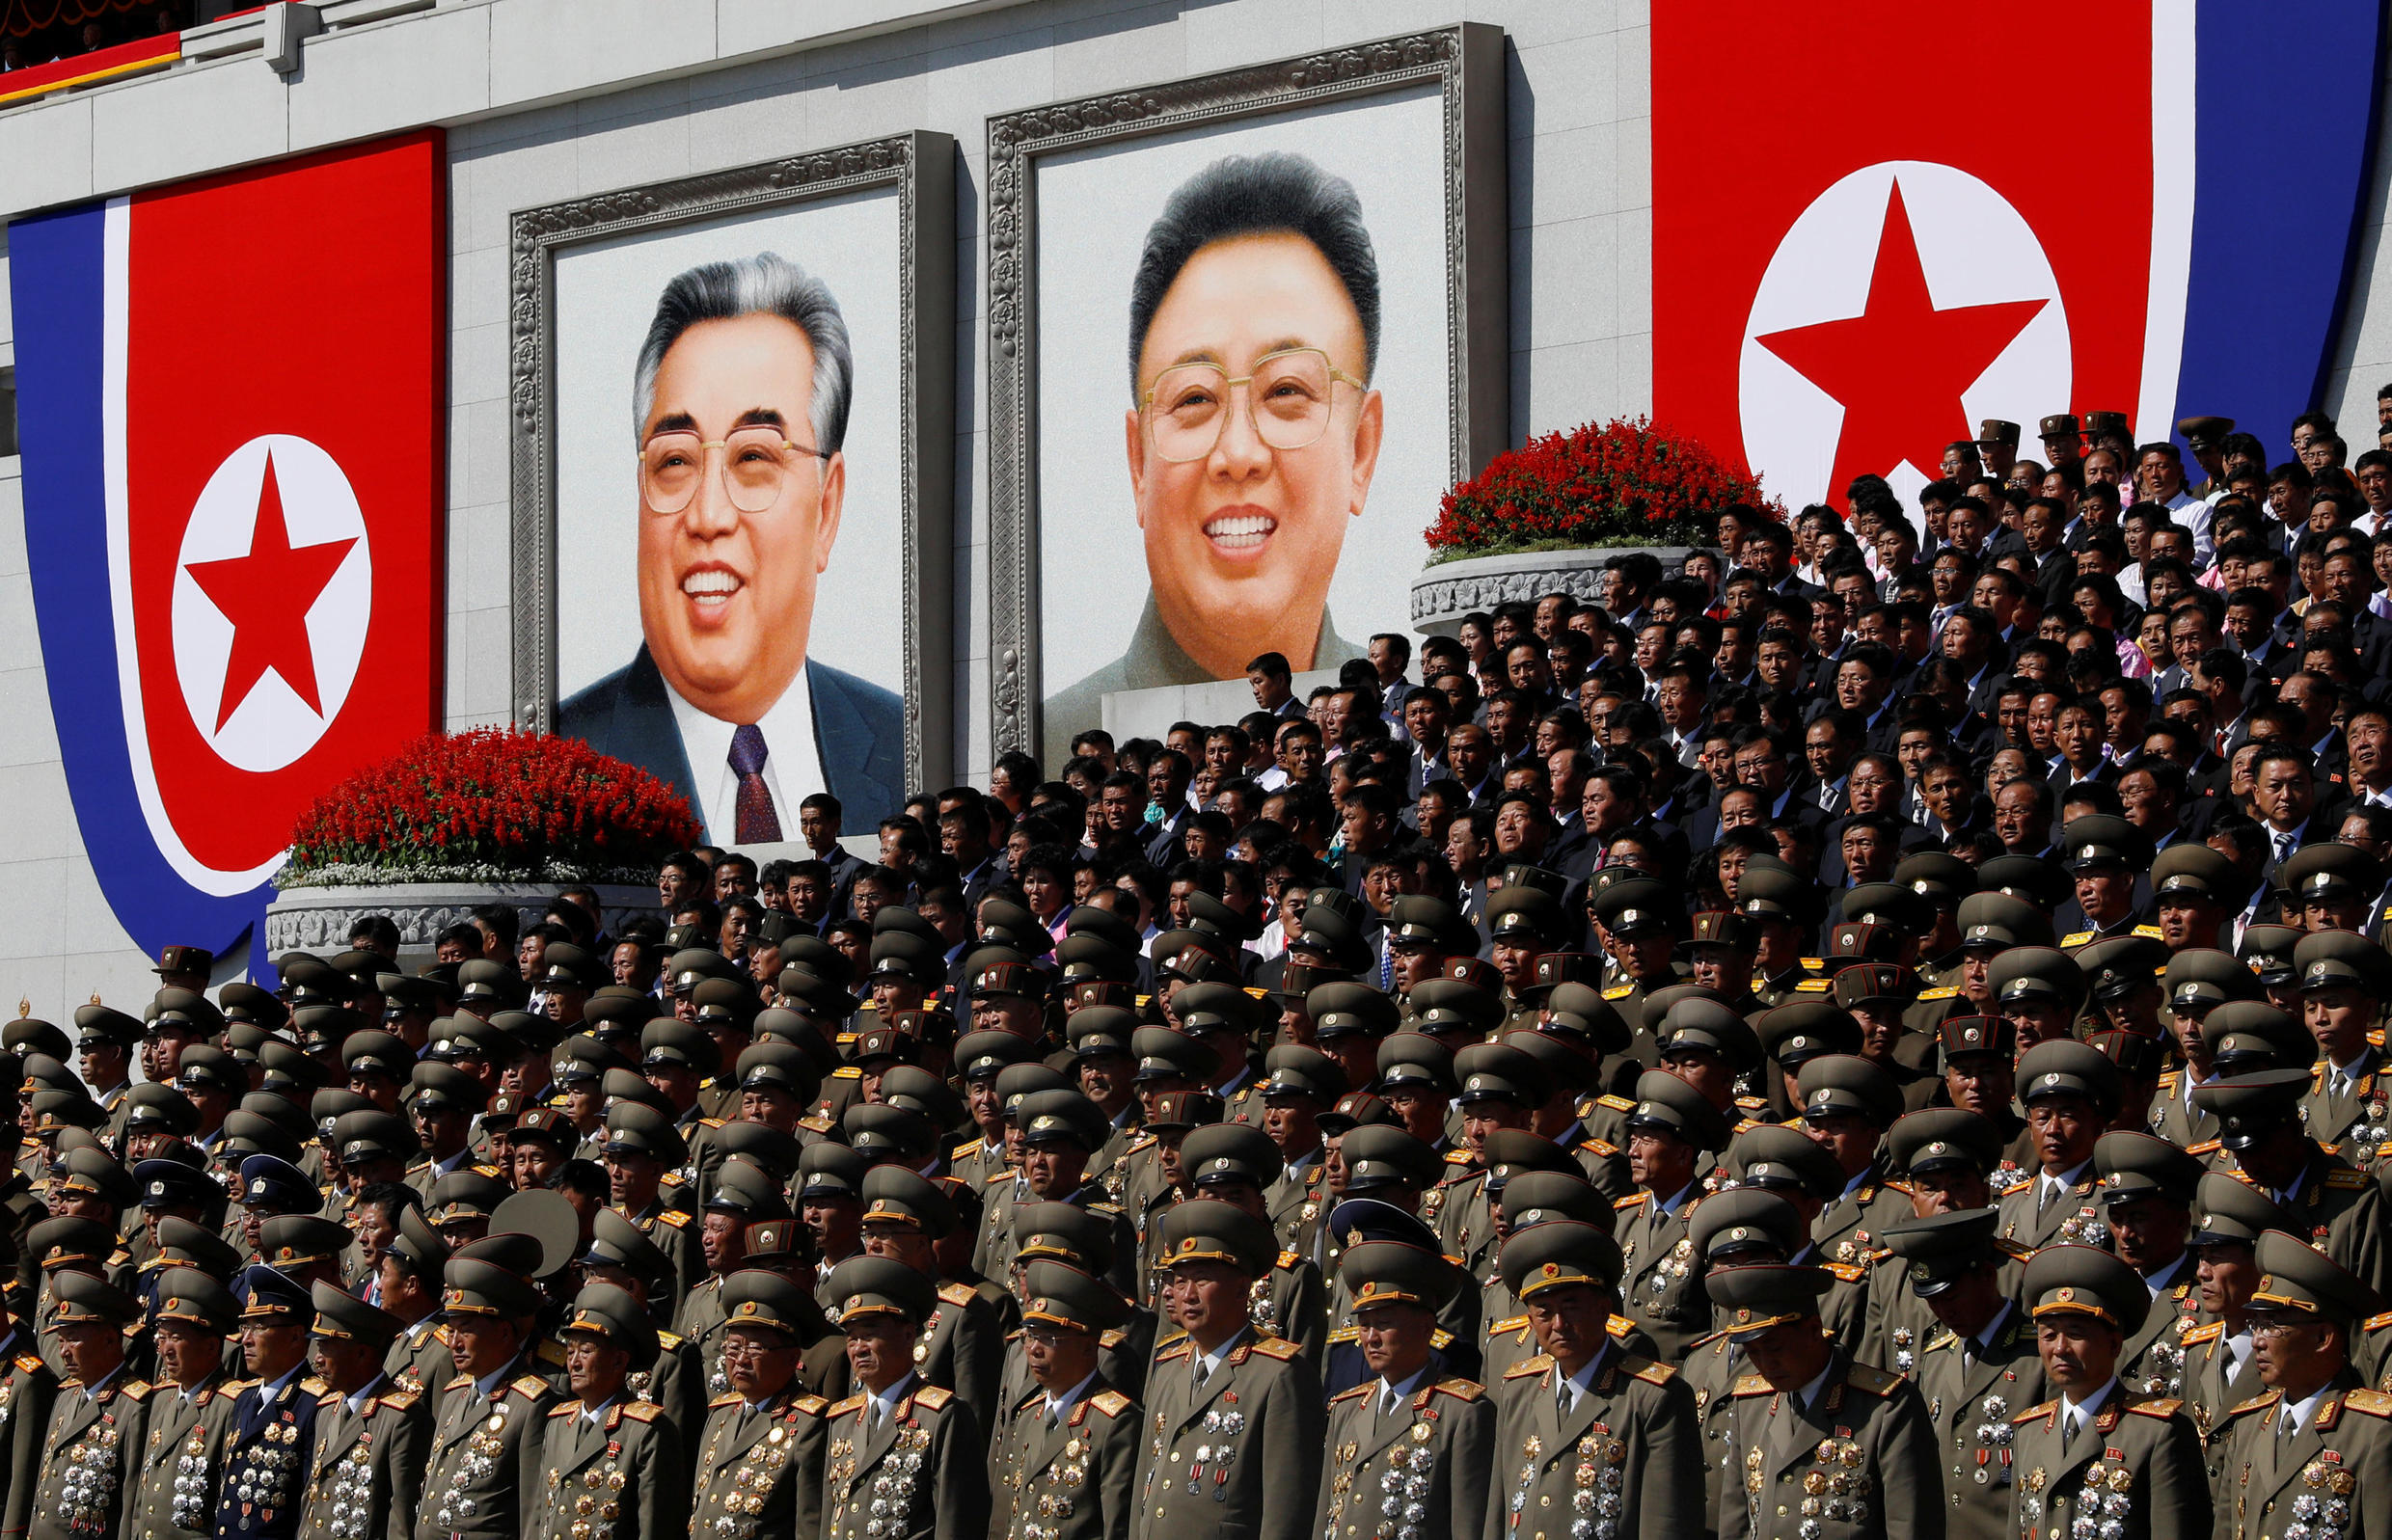 Senior military officials watch a parade as portraits of late North Korean leaders Kim Il Sung and Kim Jong Il are seen in the background at the main Kim Il Sung square in Pyongyang, North Korea, September 9, 2018.